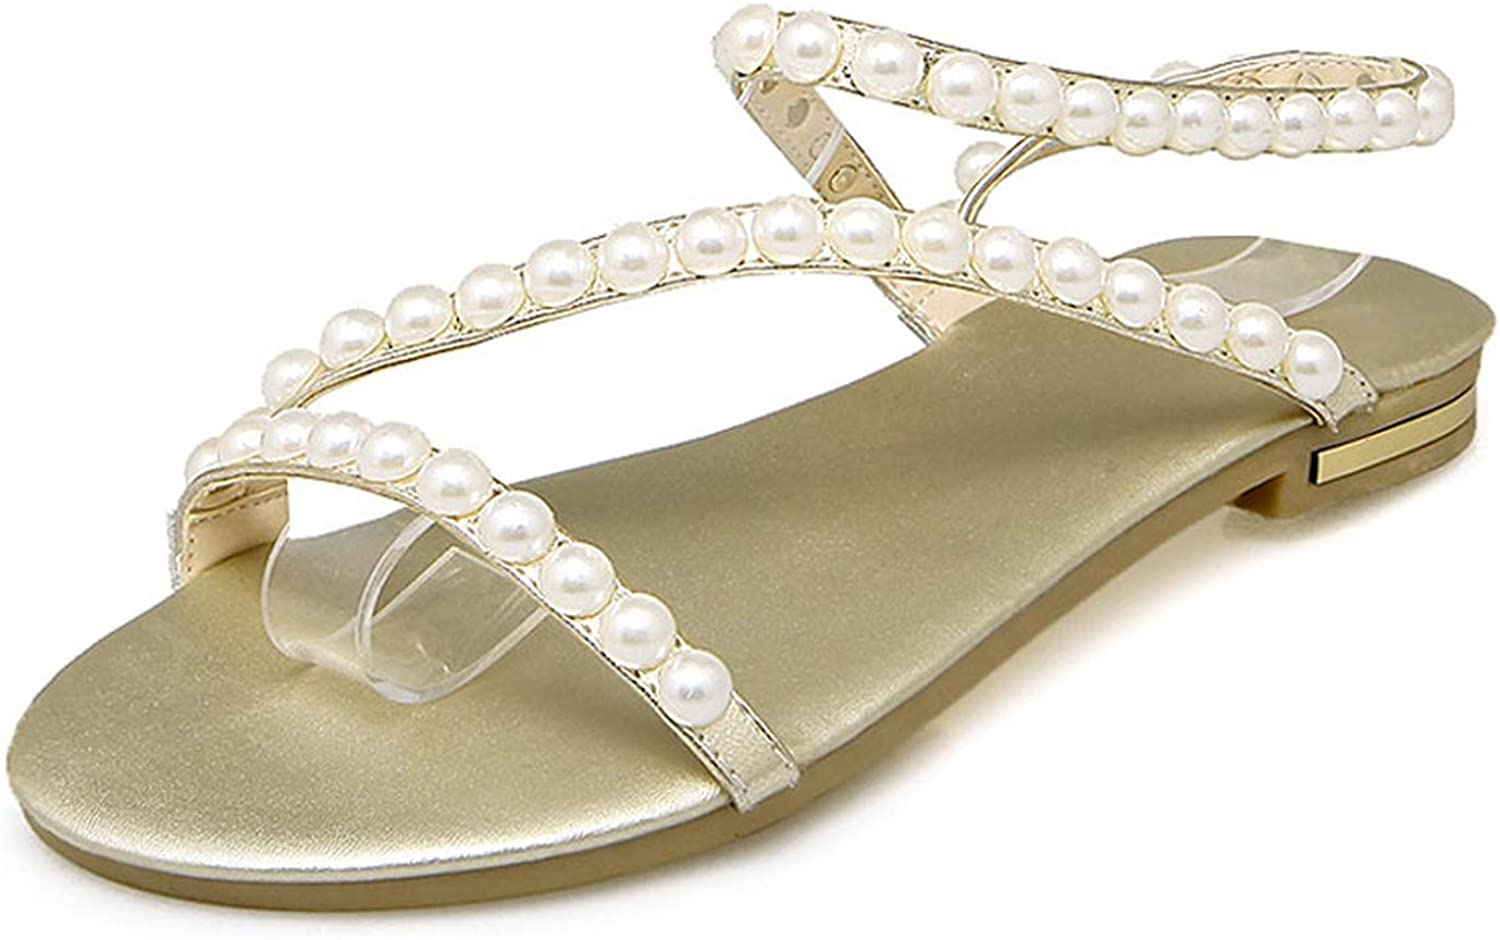 Summer Sandals Pearl Ladies Sandals Cross-Tied Flats Genuine Leather Girl Wear shoes